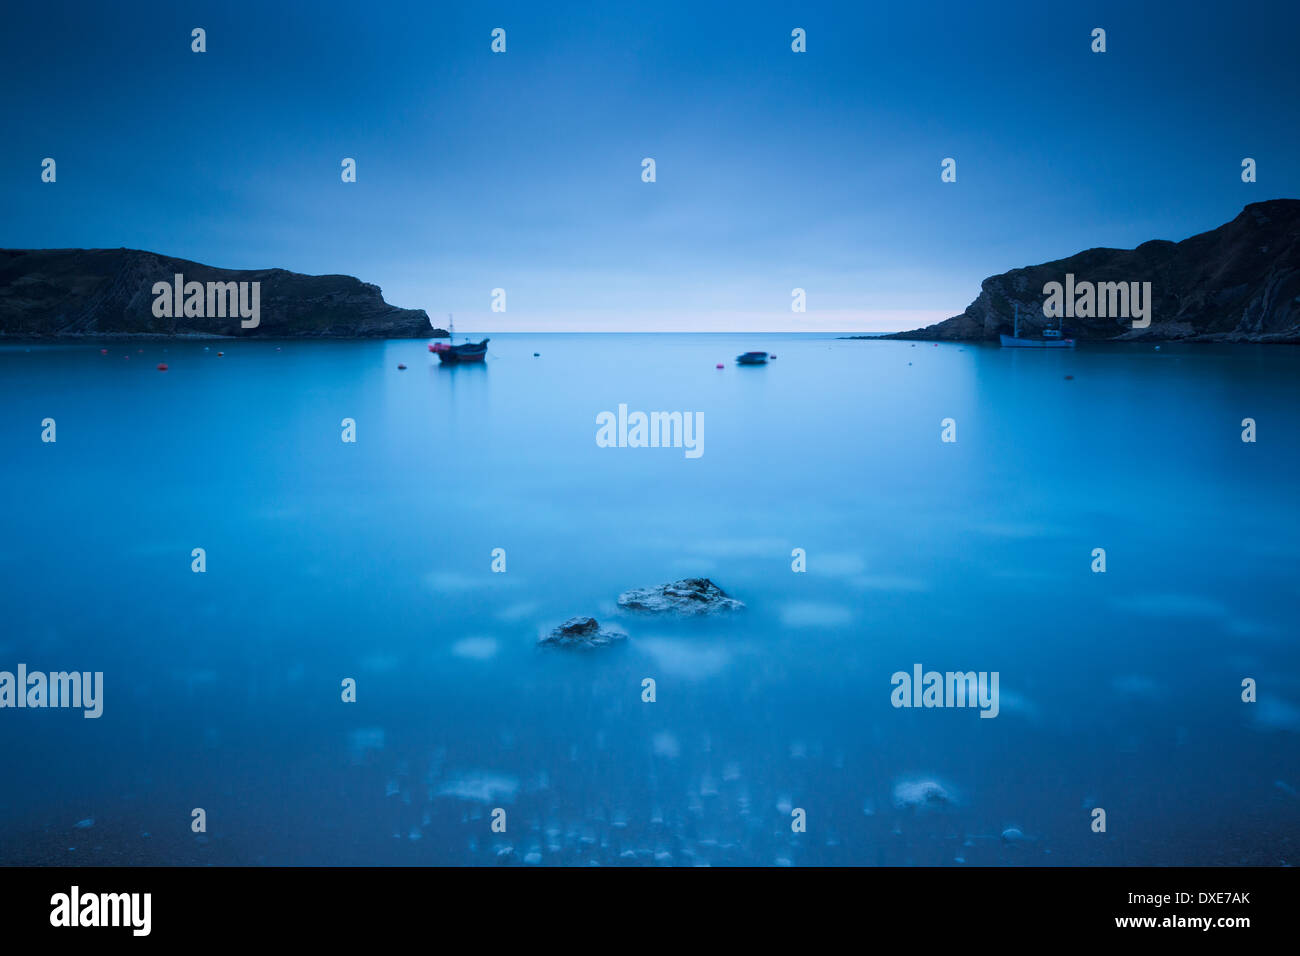 Lulworth Cove at dusk, Jurassic Coast, Dorset, England - Stock Image